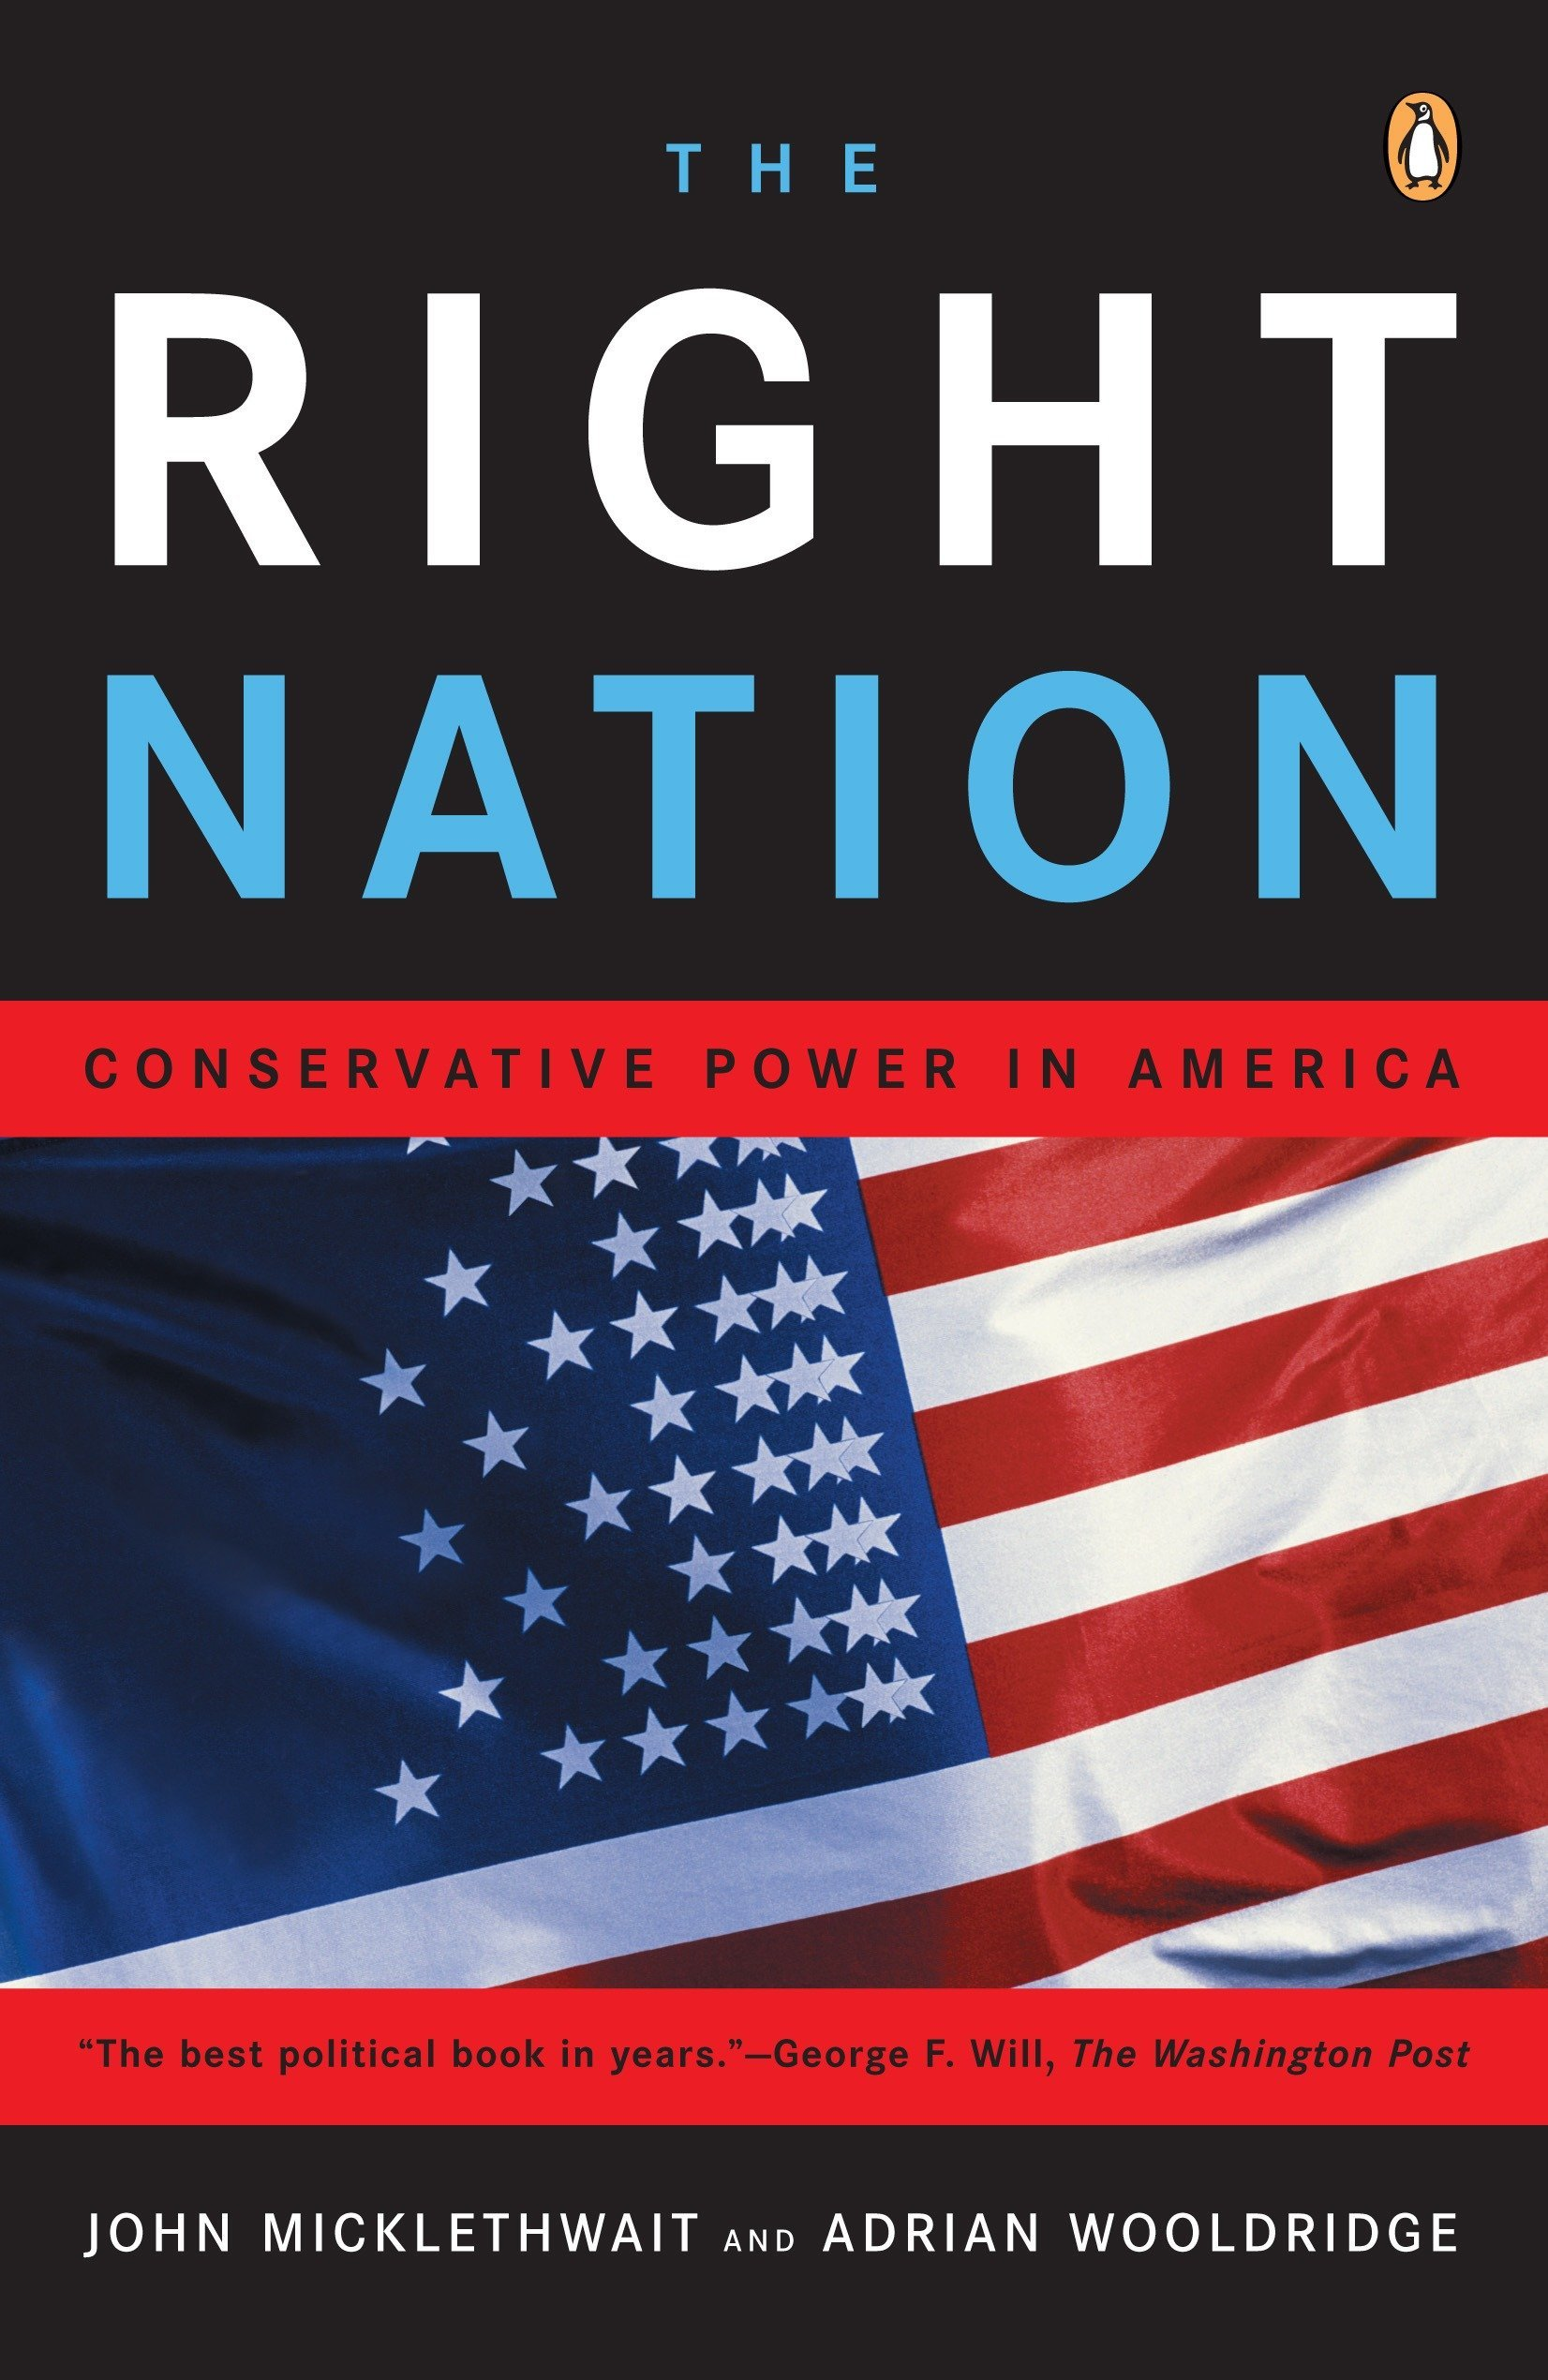 533d86c74d The Right Nation  Conservative Power in America  John Micklethwait ...